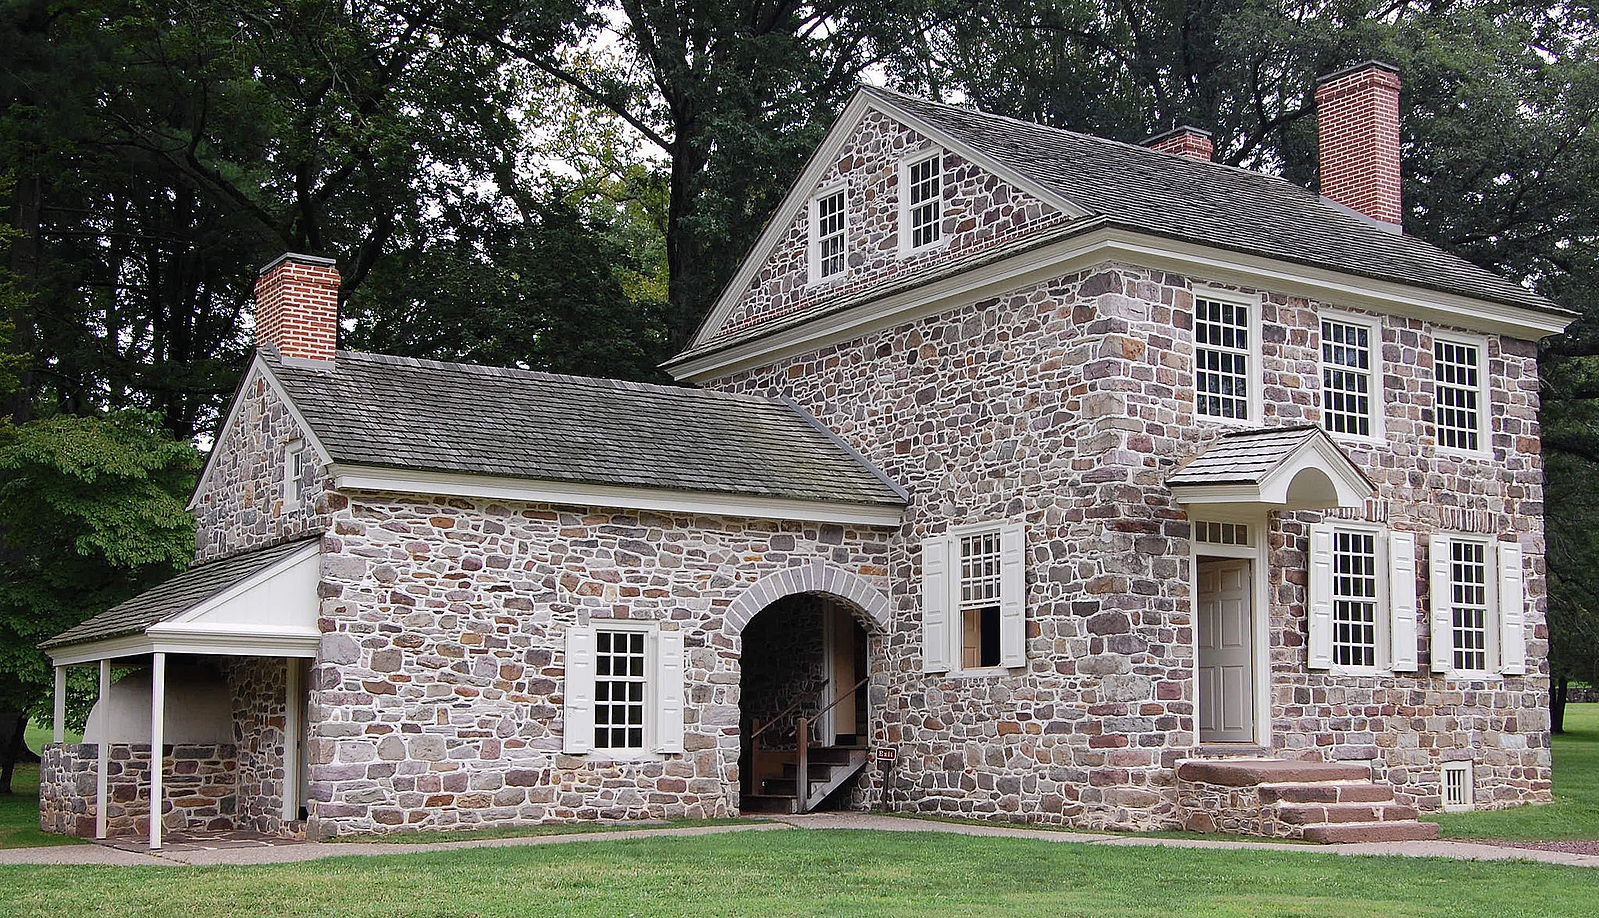 The headquarters of George Washington at the Valley Forge encampment. Photo/RevolutionaryPA.com